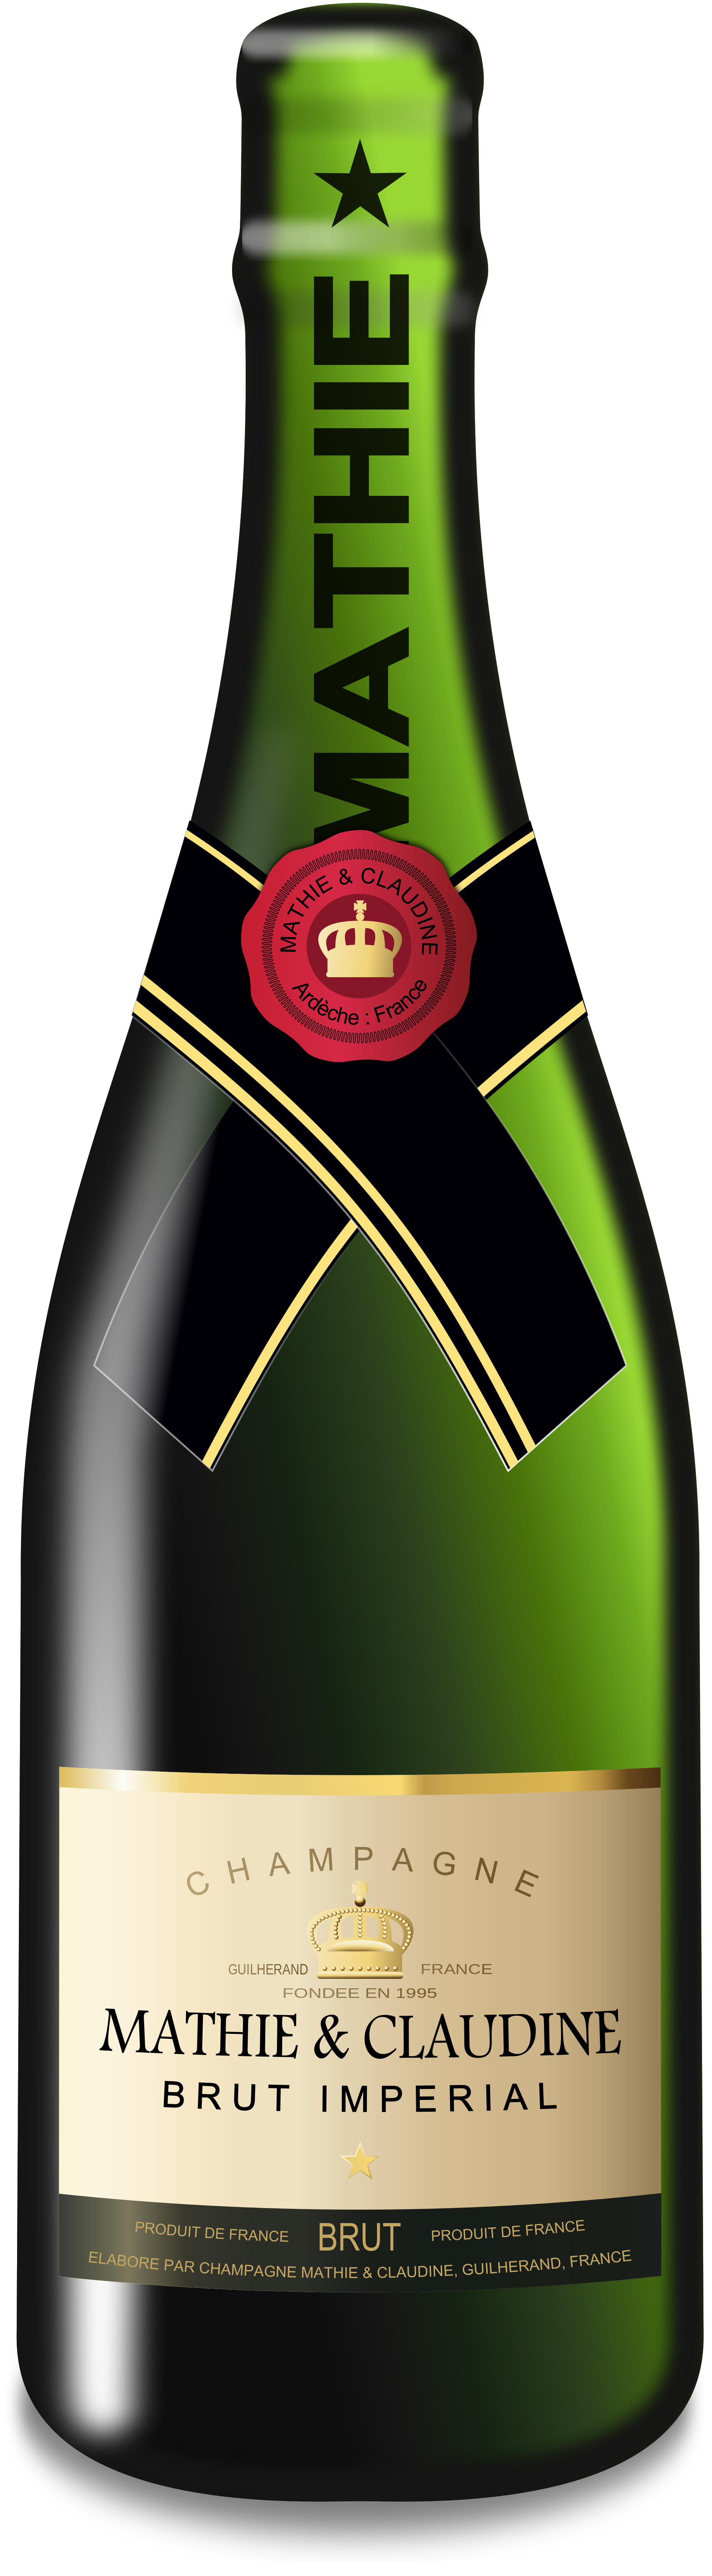 banner free download Champagne clipart svg. File bottle wikimedia commons.